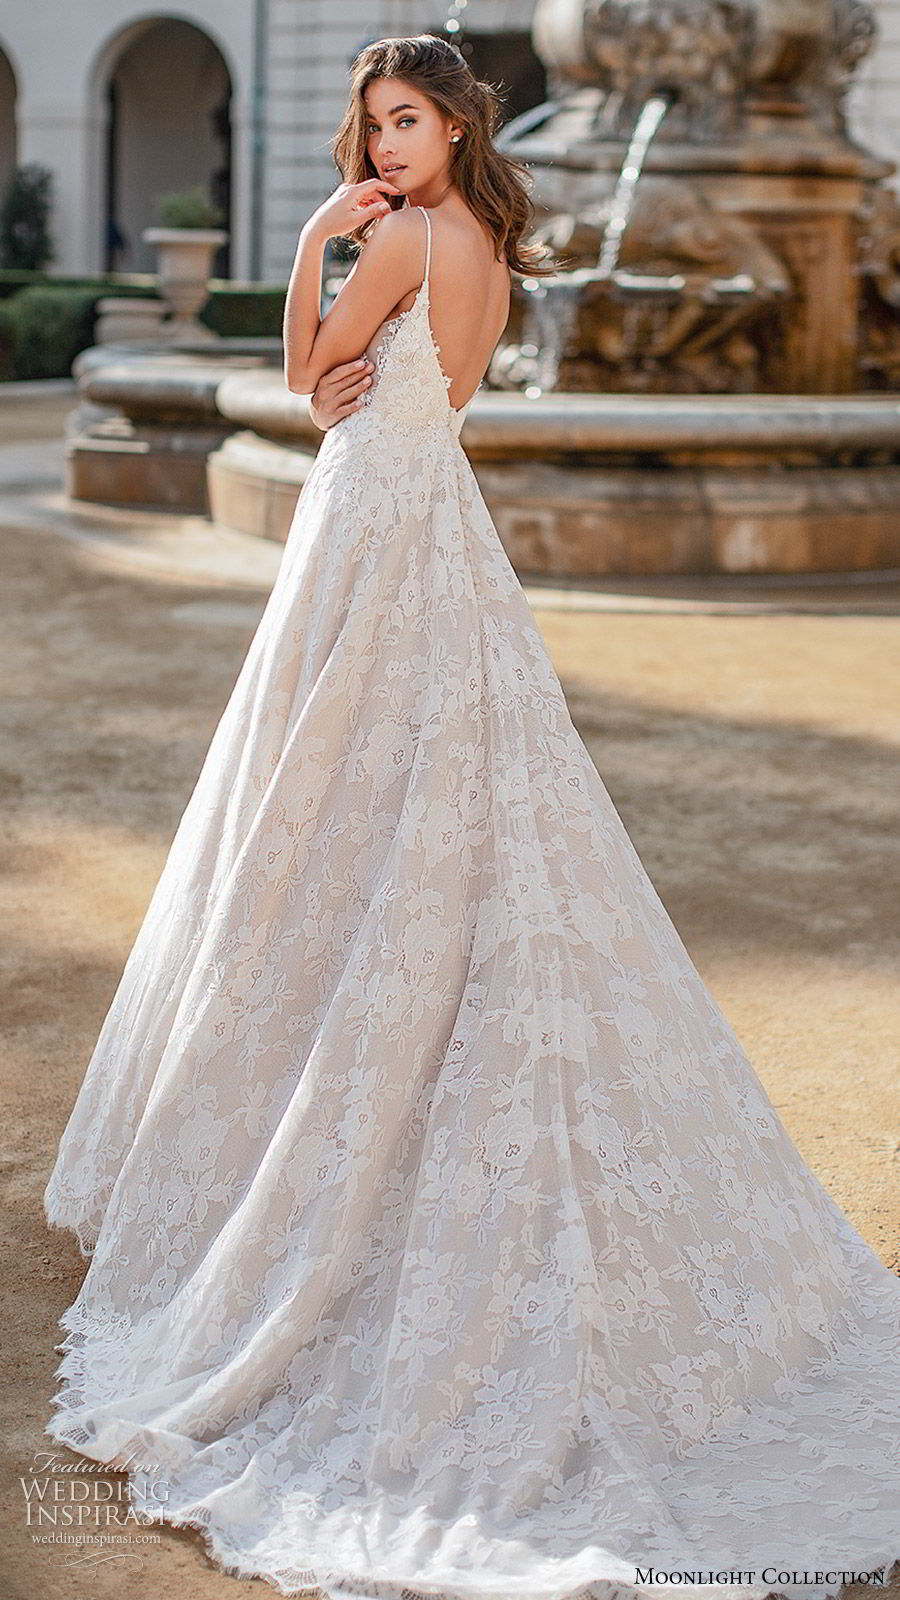 moonlight collection fall 2019 bridal sleeveless thin straps plunging v neckling fully embellished lace a line ball gown wedding dress (10) romantic princess chapel train bv